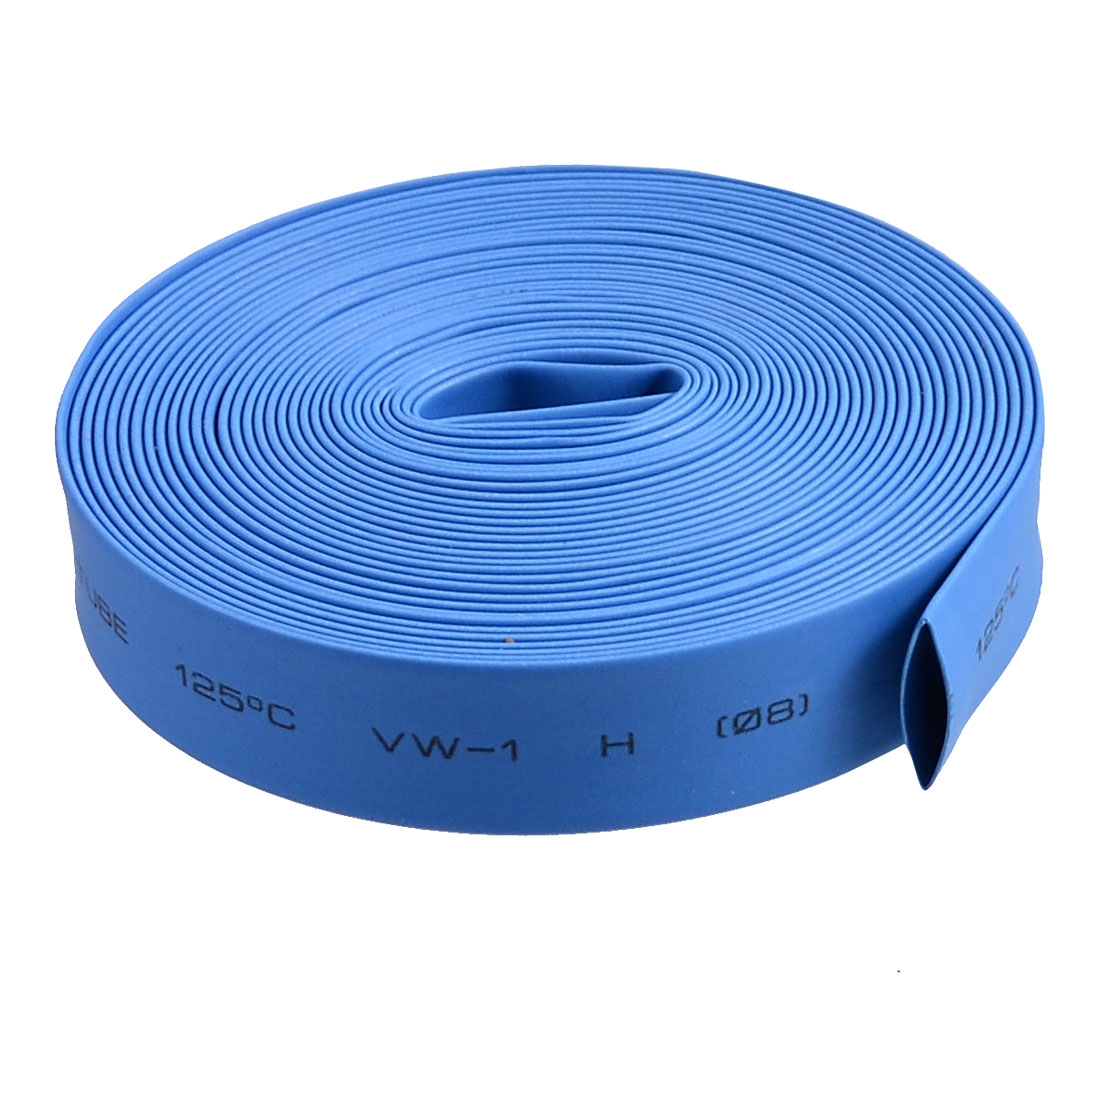 8mm Diameter Ratio 2:1 Heat Shrinking Shrinkable Tube Blue 4M Long